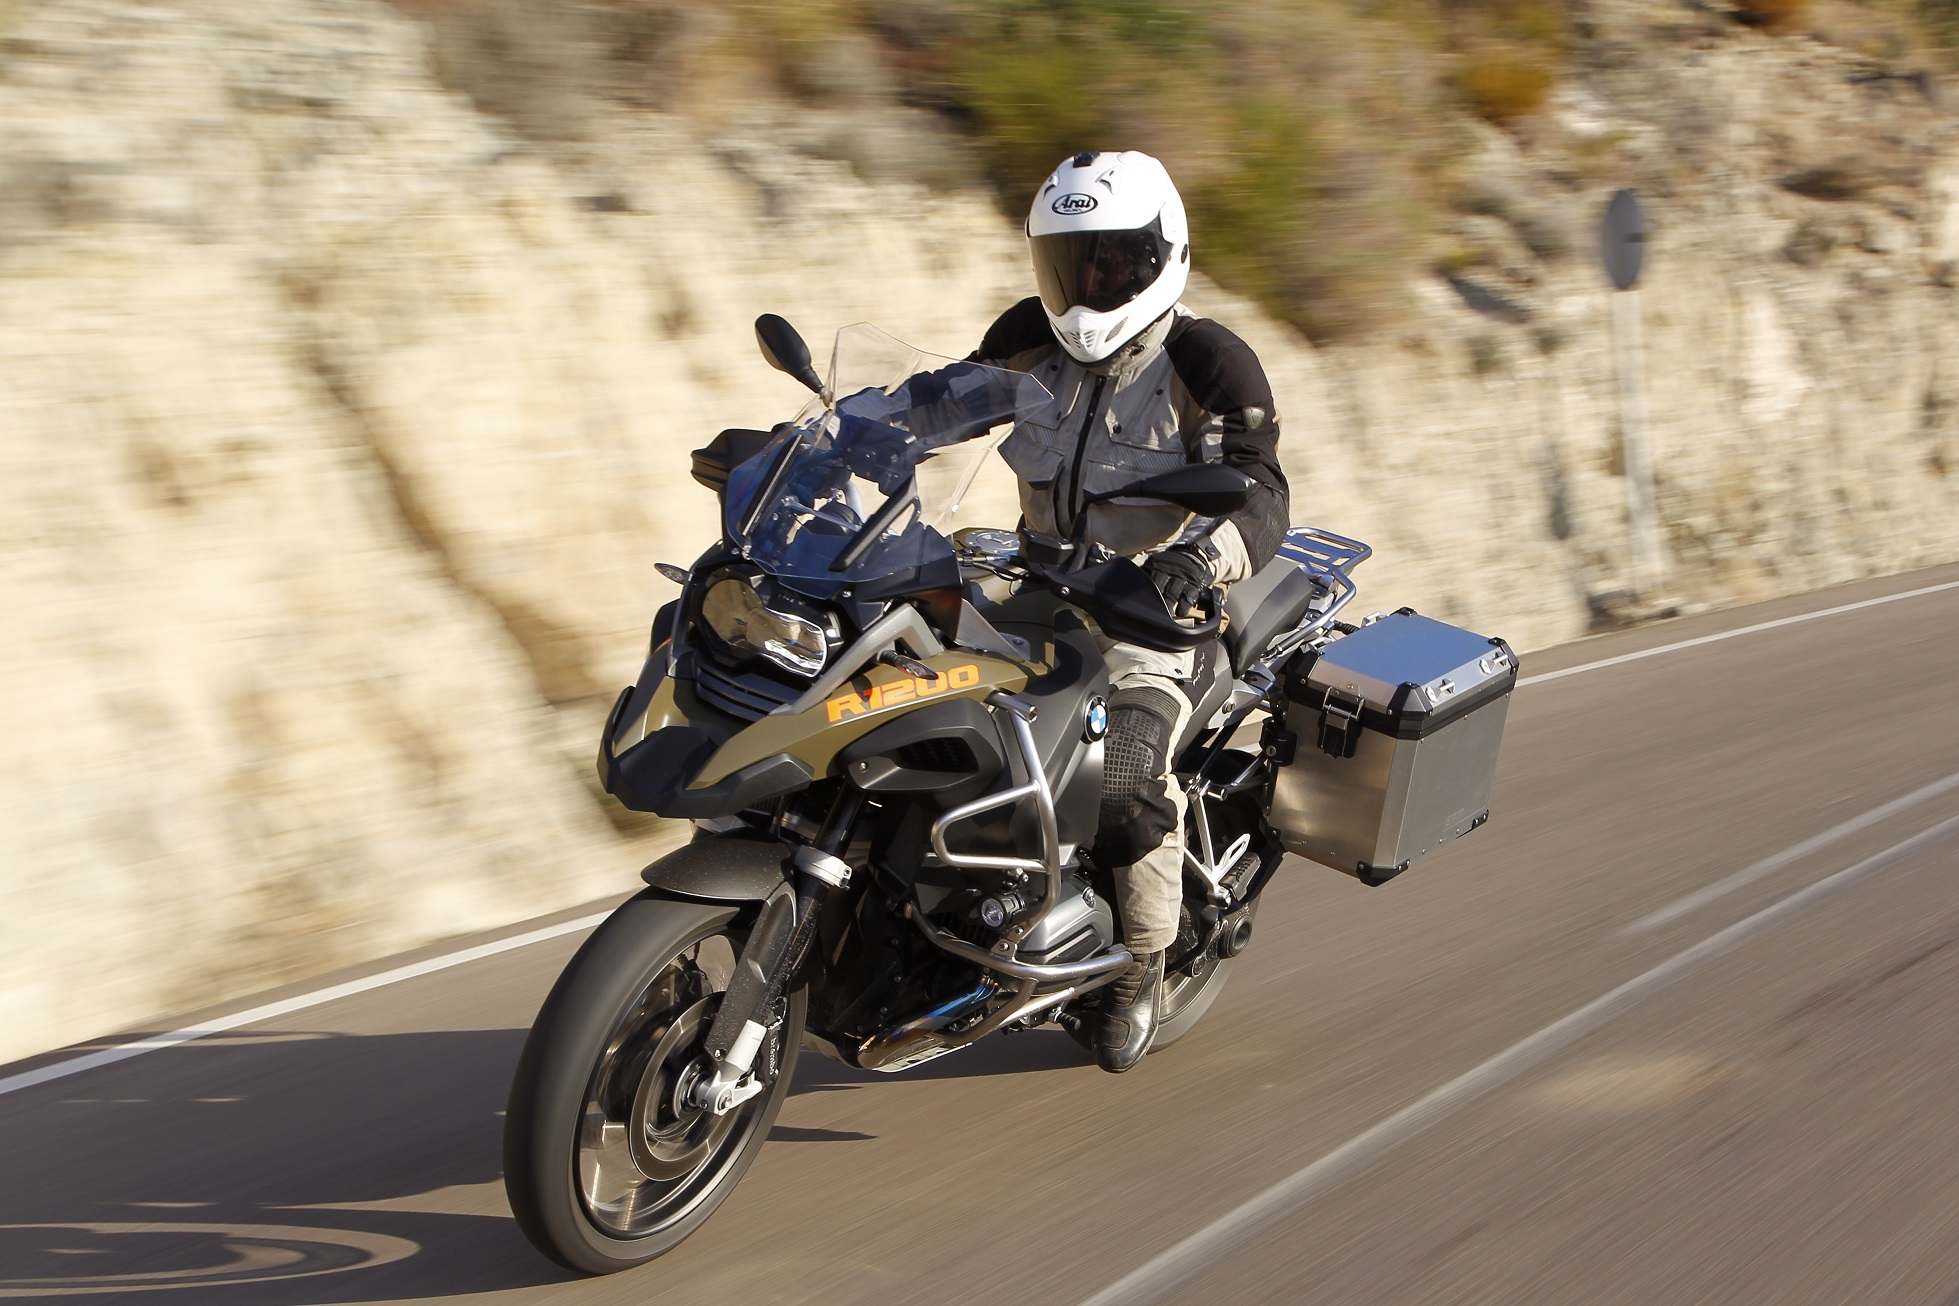 bmw s r1200gs adventure formal service campaign. Black Bedroom Furniture Sets. Home Design Ideas